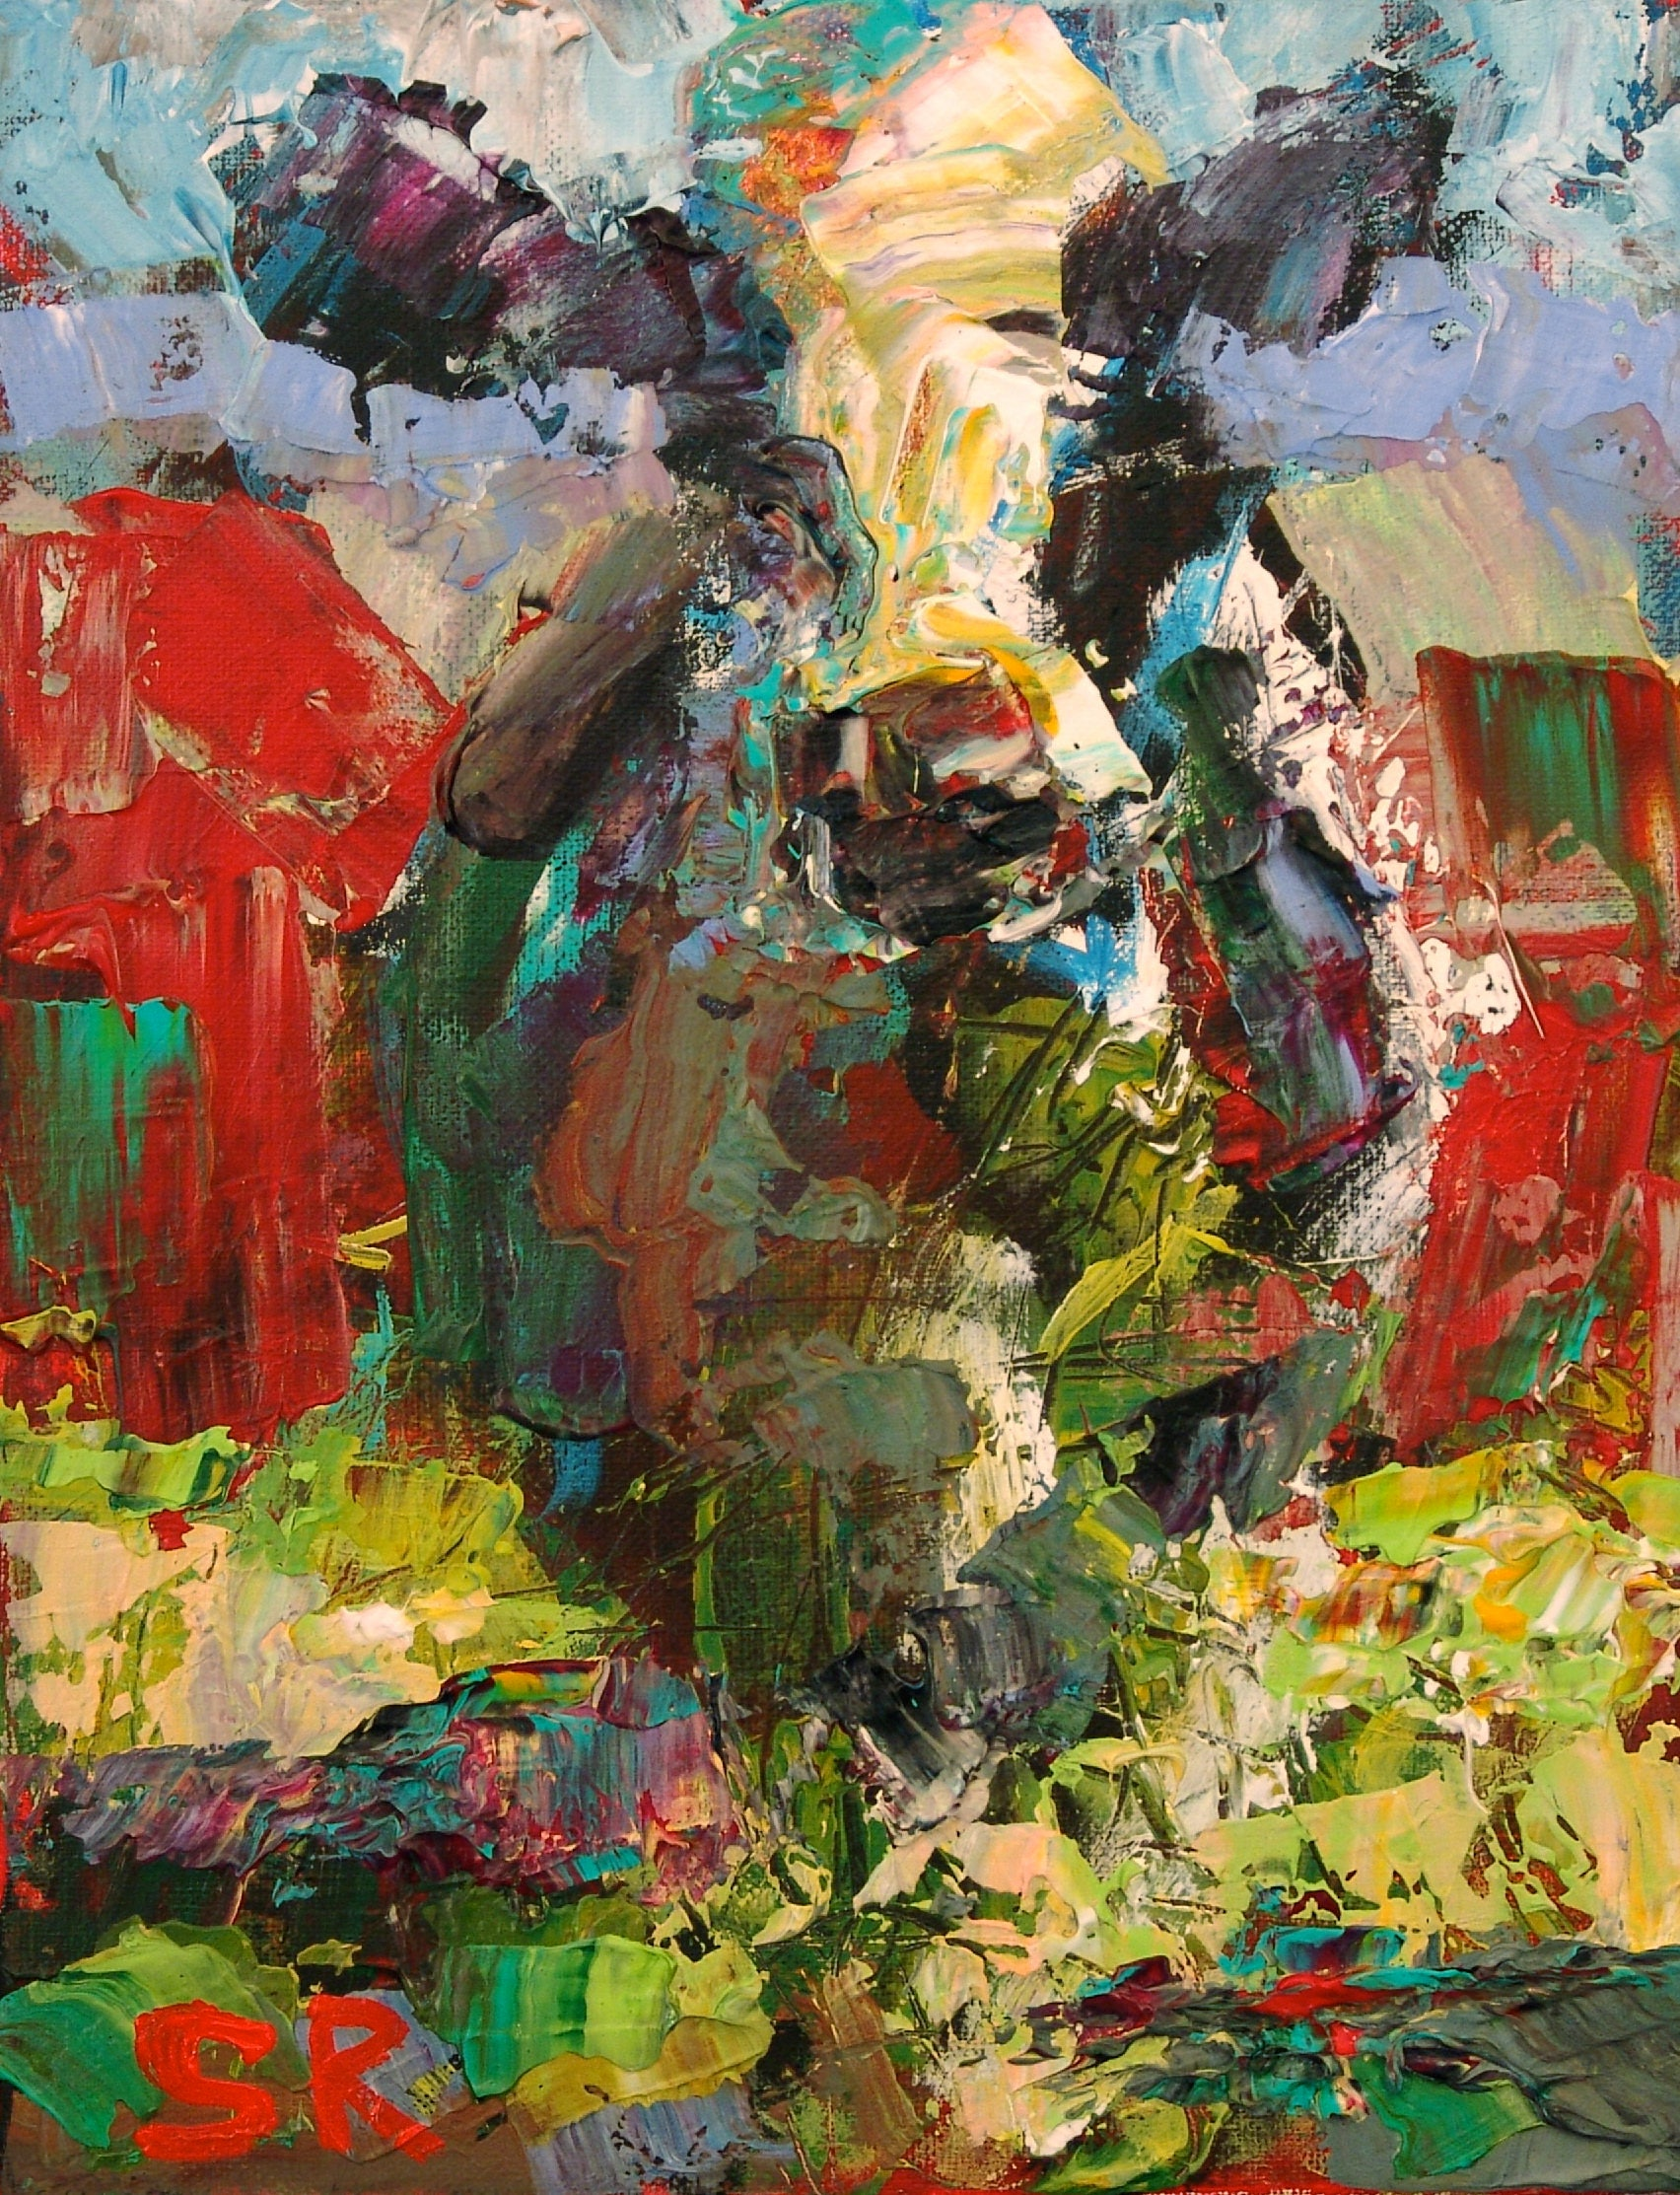 Cow Painting 36 x 48 Original Large Cow Painting Abstract Cow for Farm Philippines Painting  587fsj